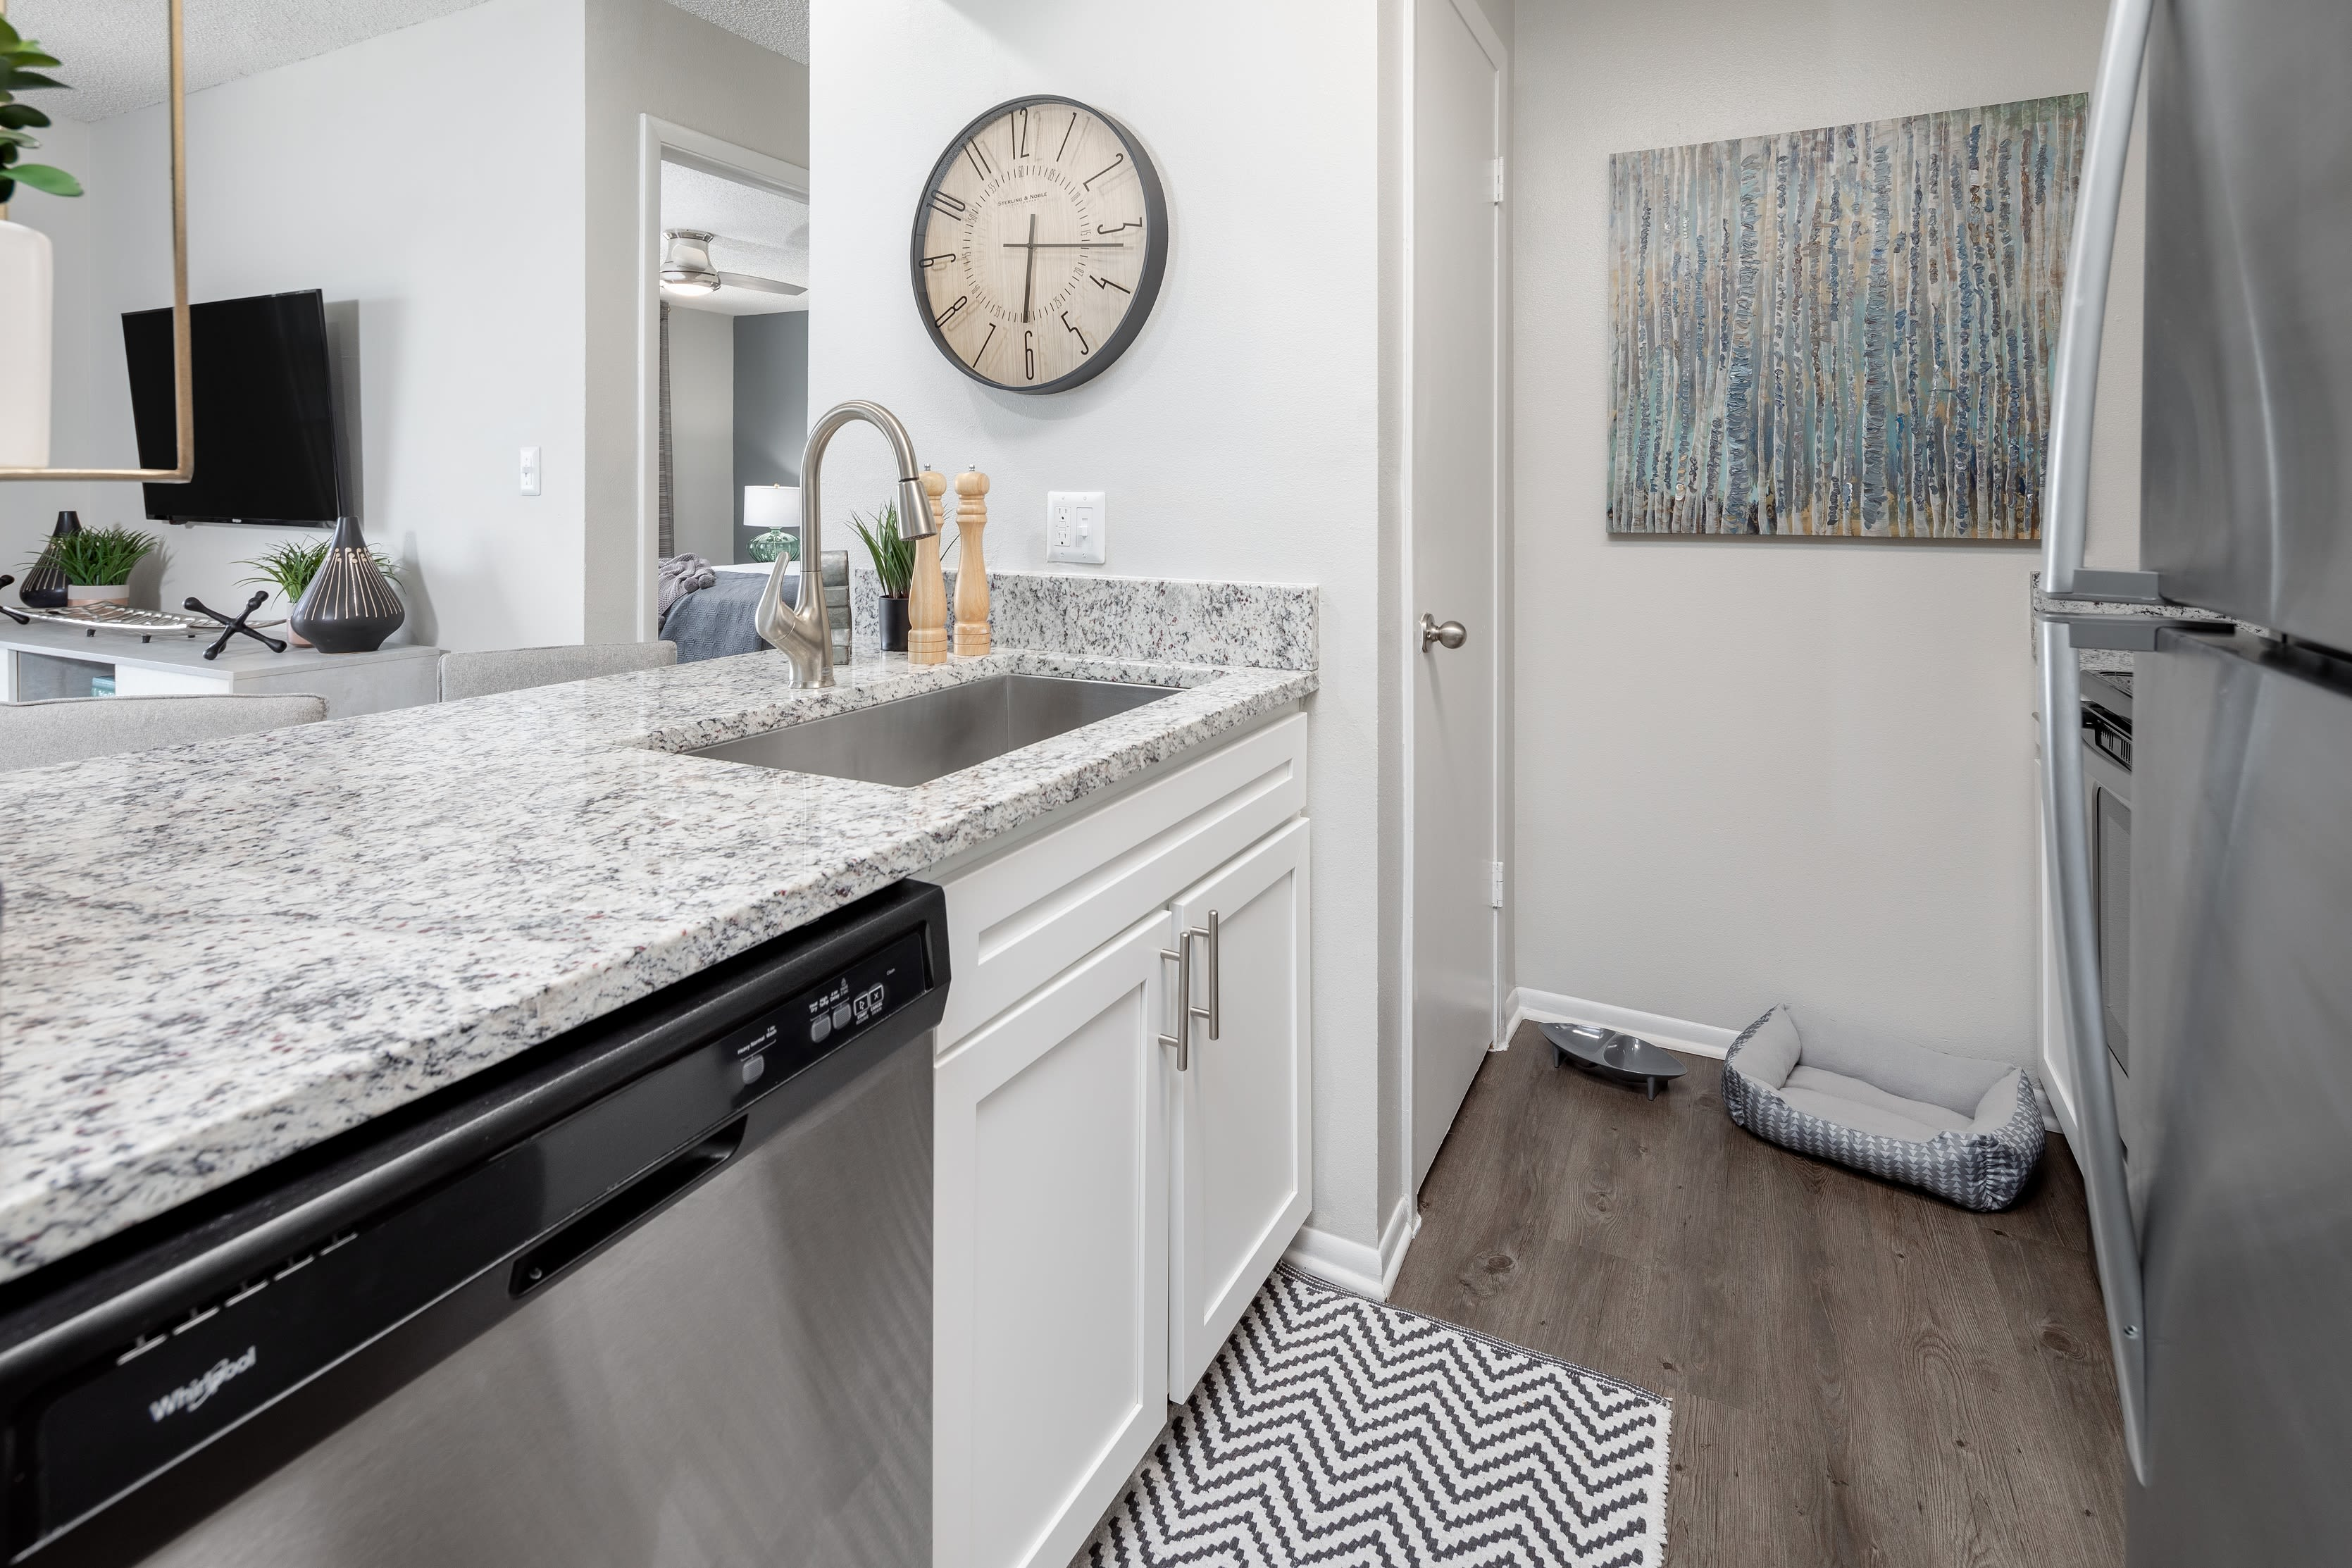 Renovated kitchen with stainless steel appliances and granite countertops at Compass in Melbourne, Florida